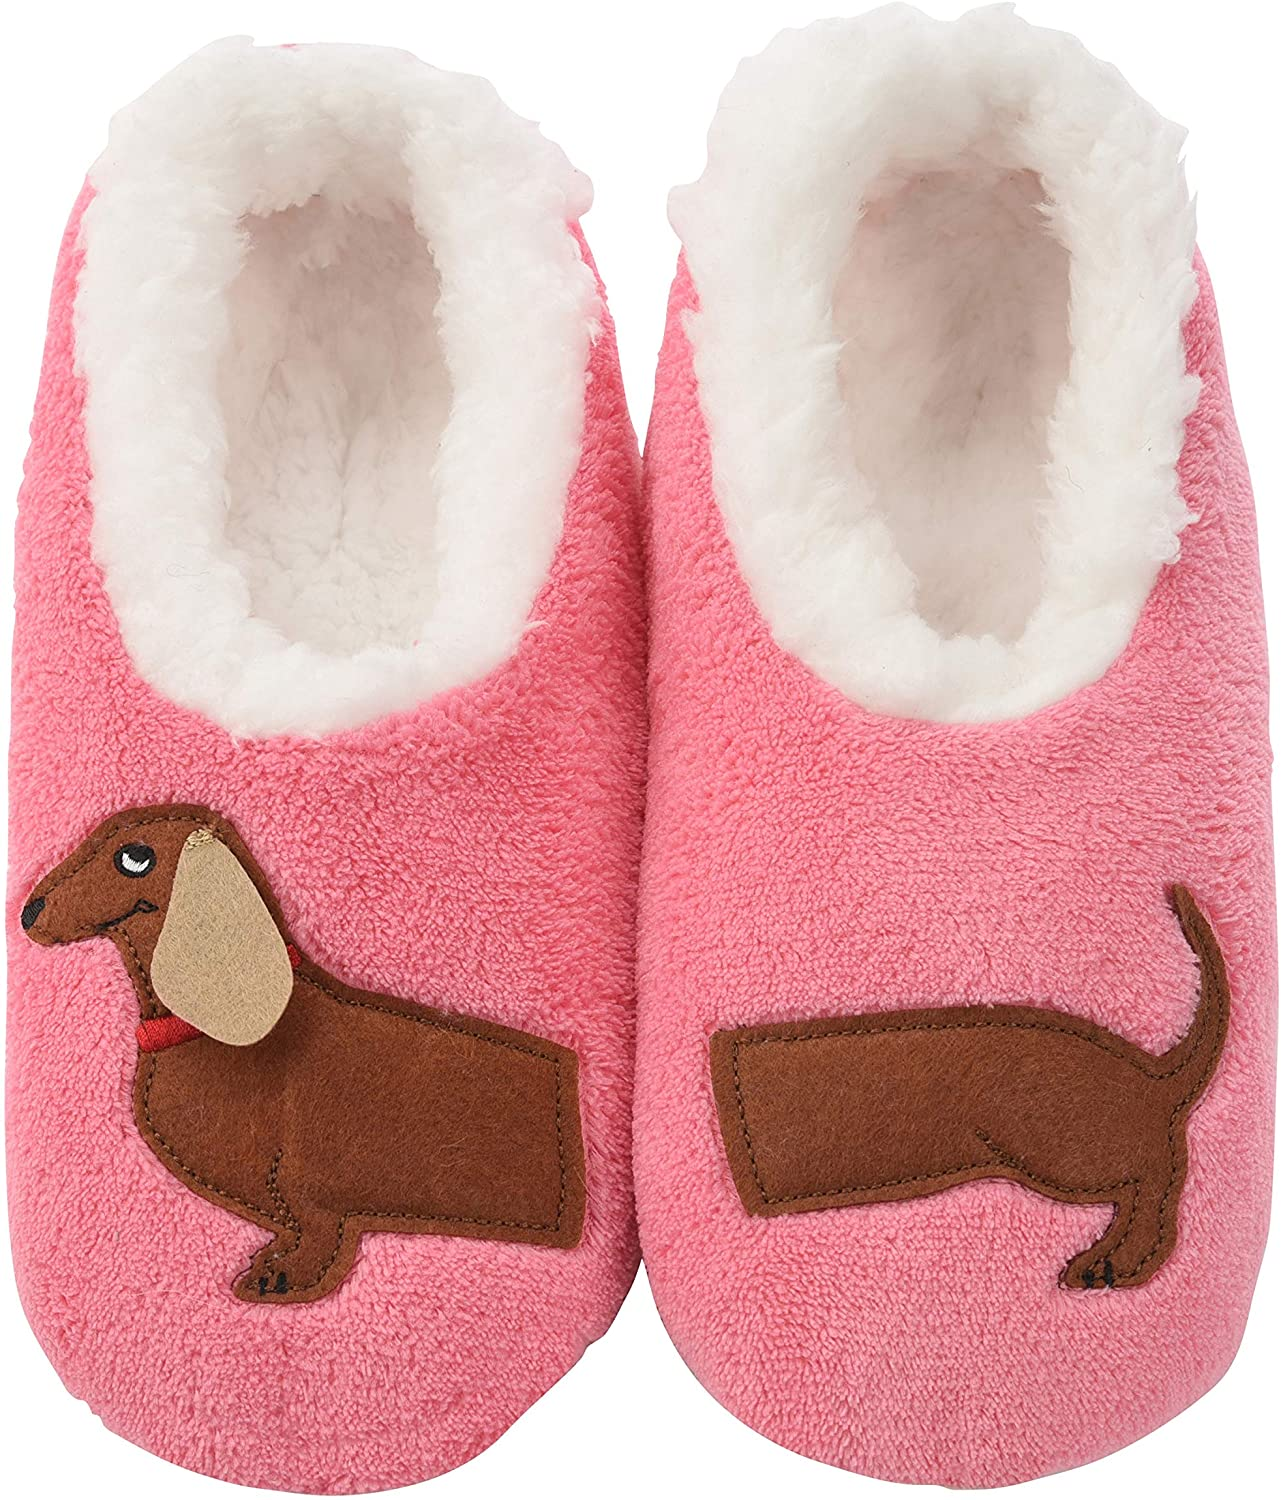 Snoozies Pairables Womens Slippers - House Slippers - Dachshund